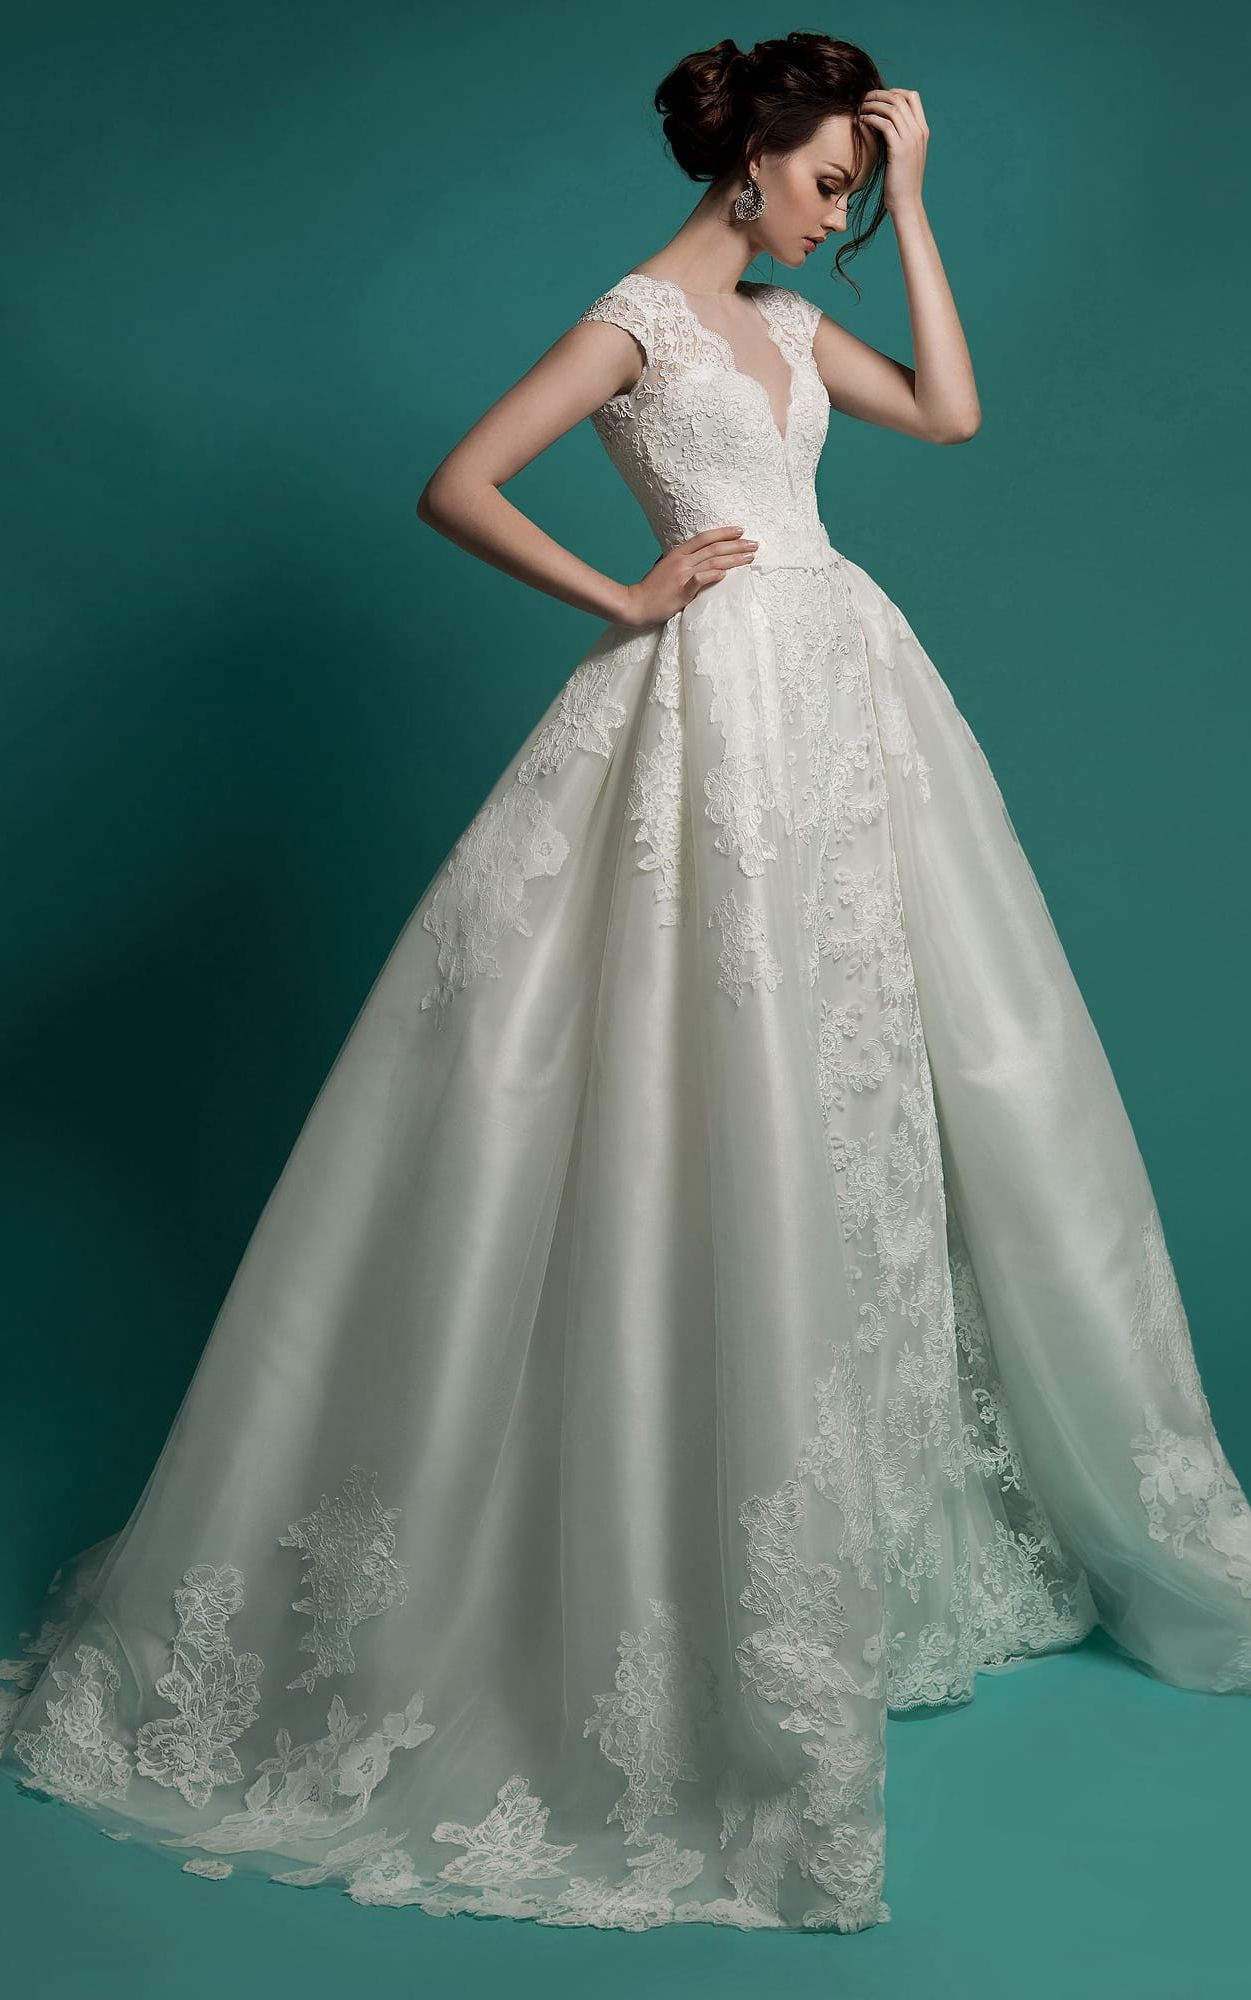 Wedding dress with removable train  Mermaid FloorLength VNeck CapSleeve Zipper Lace Dress With Sash